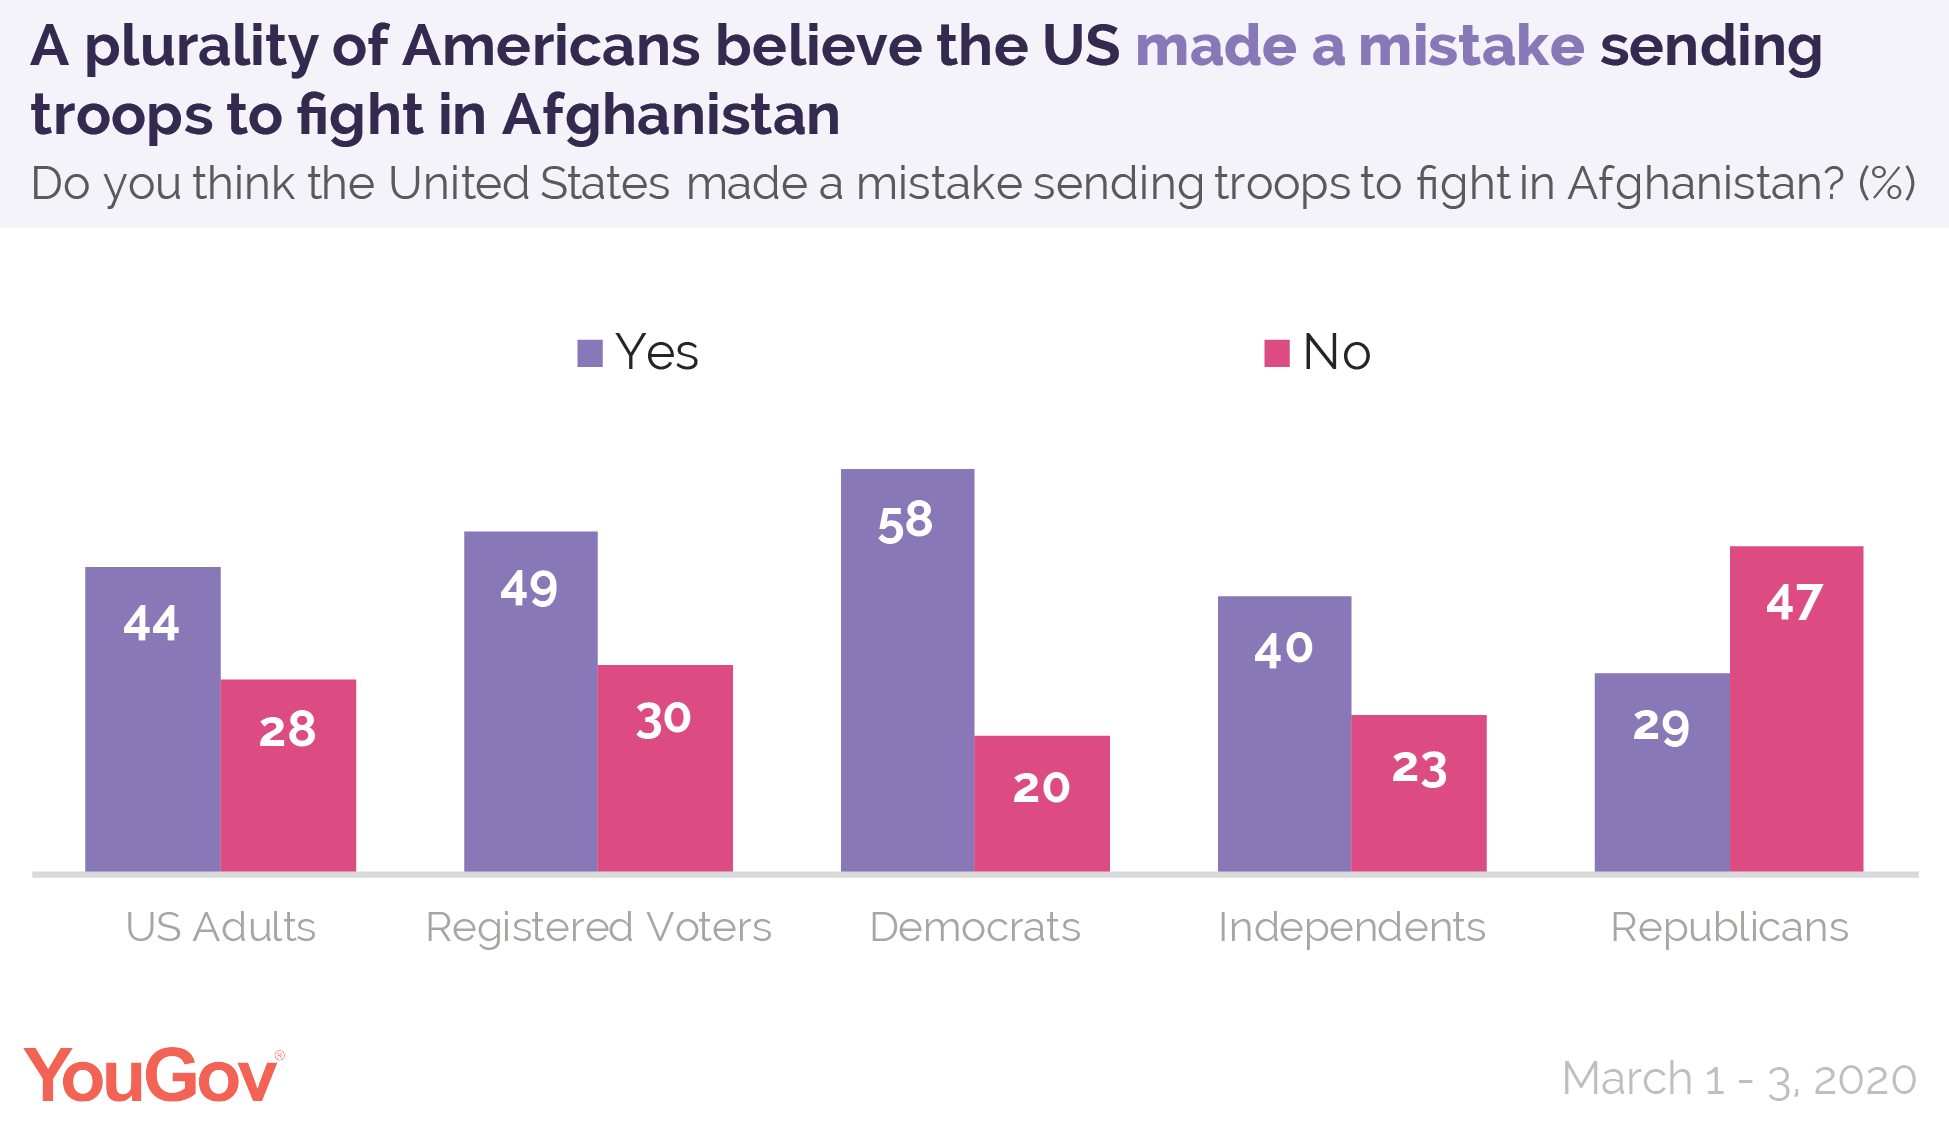 A plurality of Americans believe the US made a mistake sending troops to fight in Afghanistan